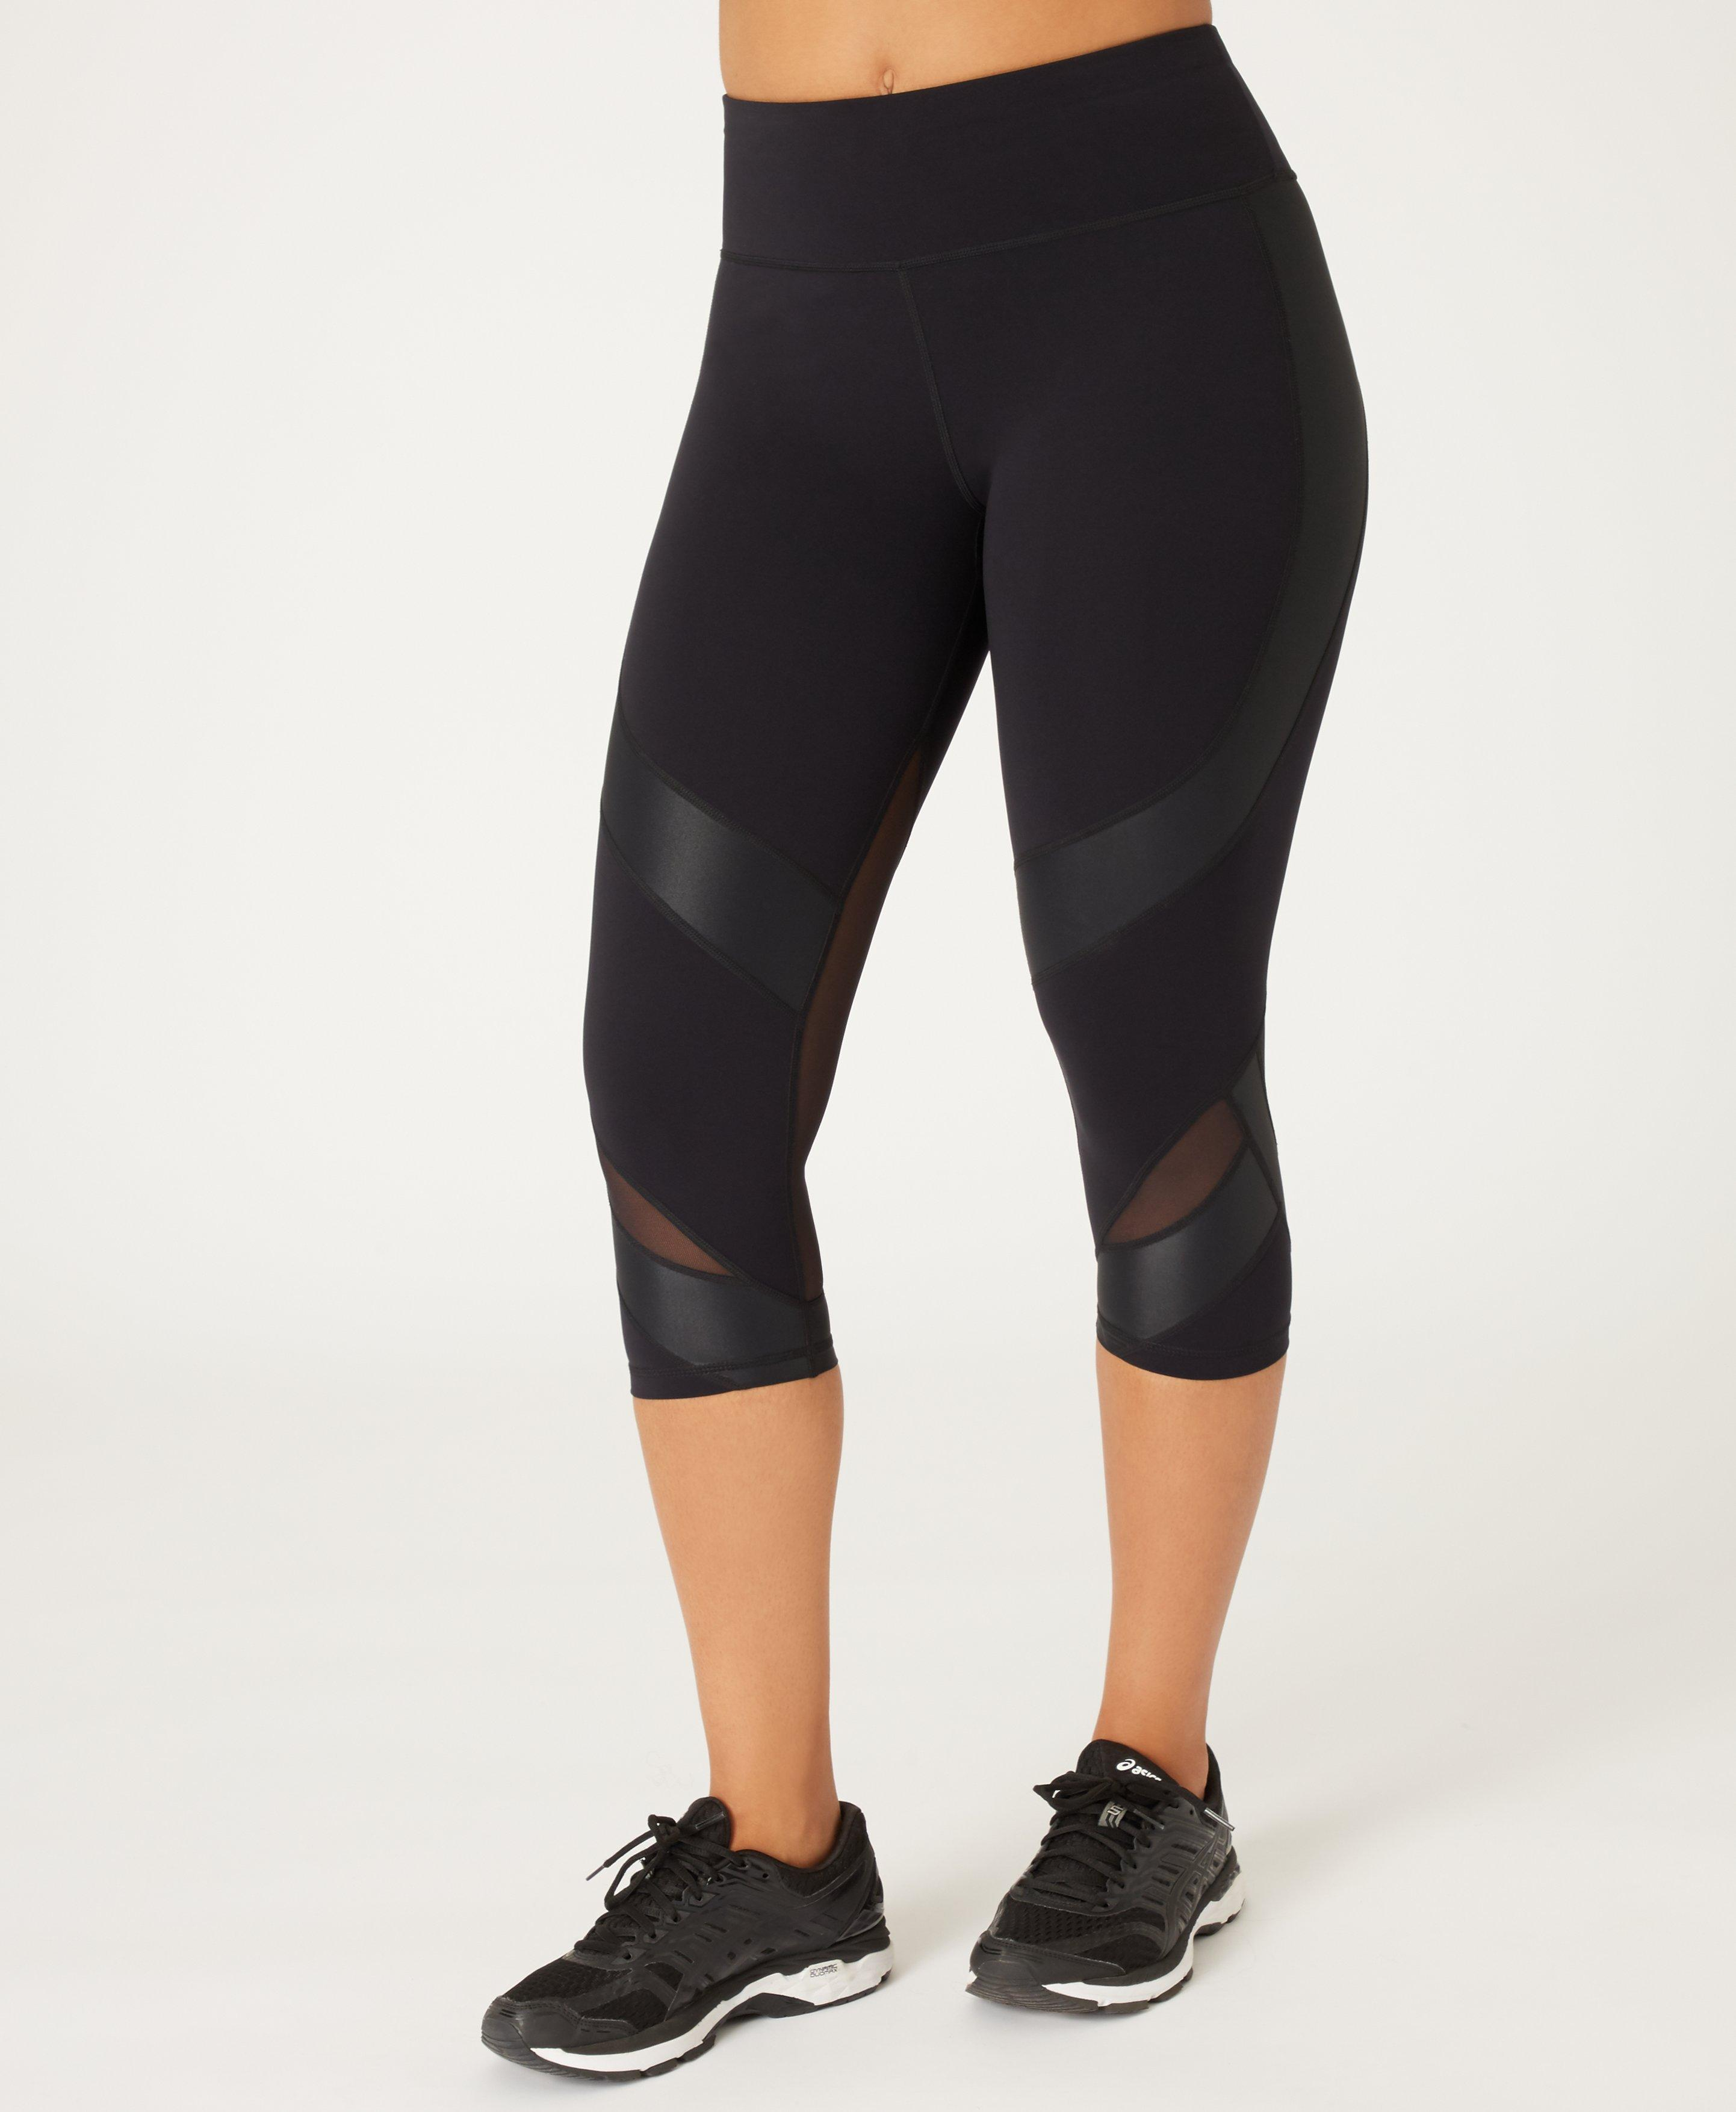 These super stretchy cropped leggings are here to add an extra oomph to your workouts. Constructed in our signature bum-sculpting fabric that flatters where it matters they perform for over seven sports. With mesh inserts and a high waist with adjustable drawcord for the perfect fit.